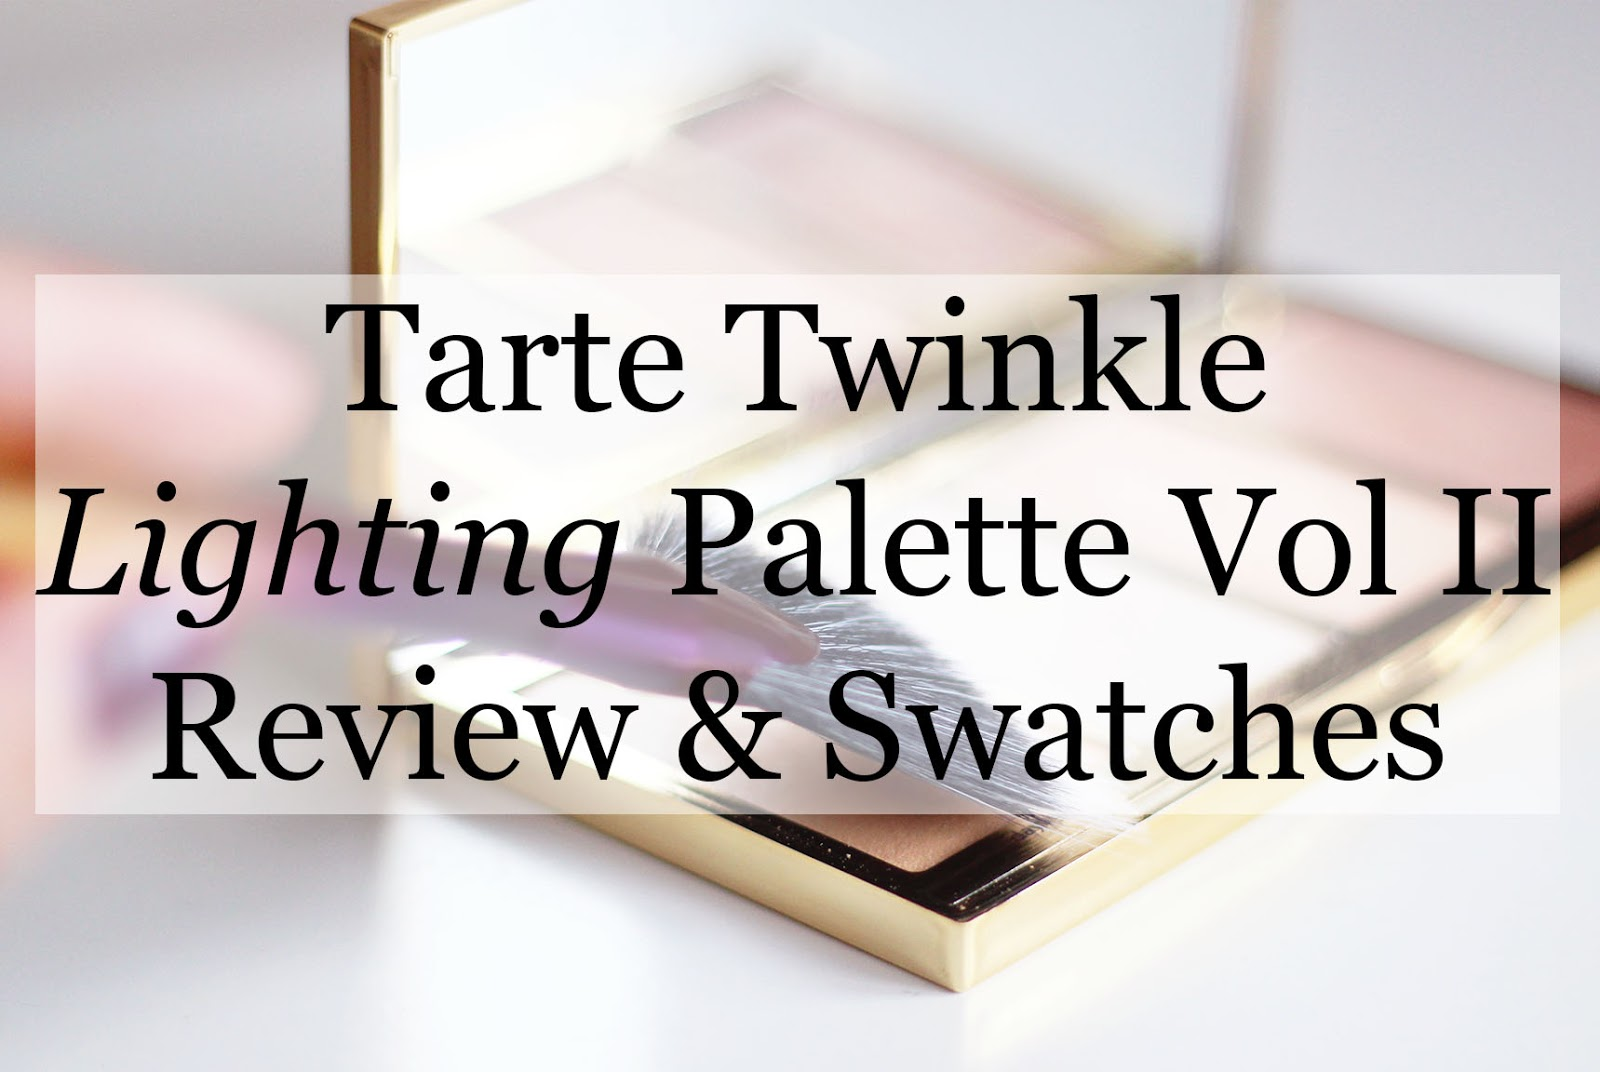 Tarte Twinkle Lighting Palette Vol Ii Review Swatches Modish